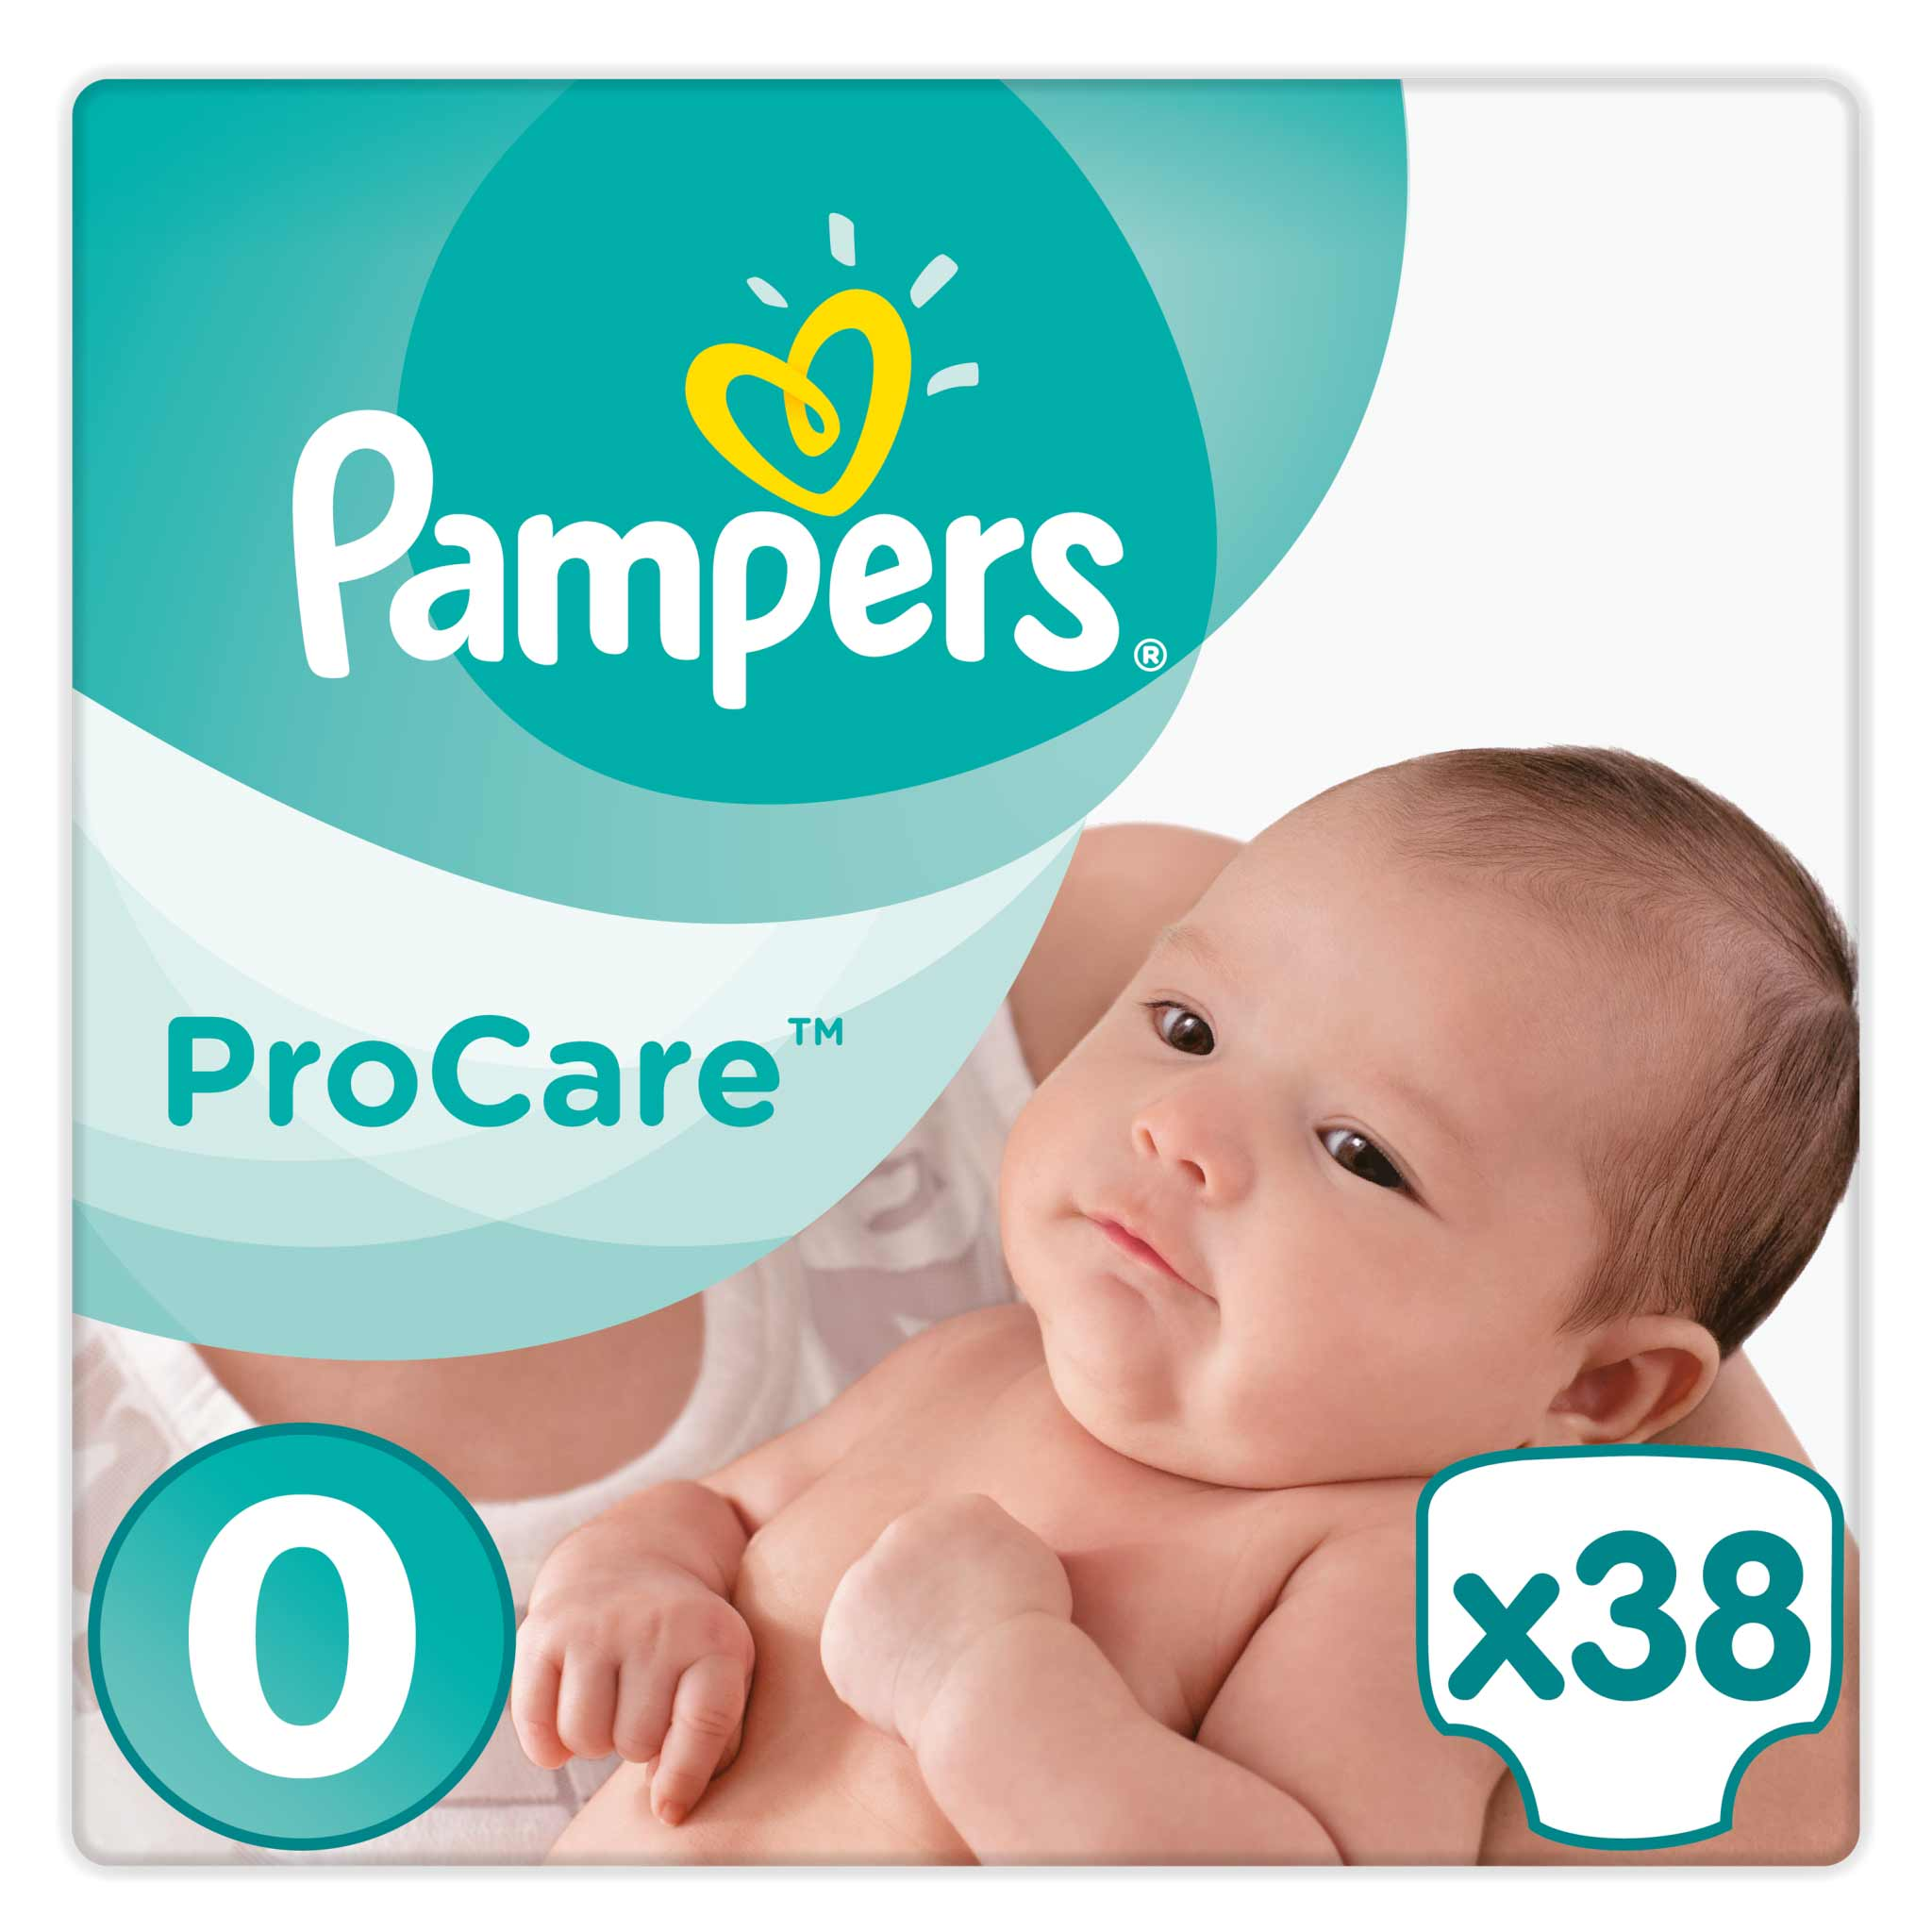 c9e91e0c049 1-2.5 kg < ΠΟΣΑ ΚΙΛΑ ΕΙΝΑΙ ΤΟ ΜΩΡΟ ΣΑΣ; (PAMPERS) < Pampers -  oFarmakopoiosMou.gr